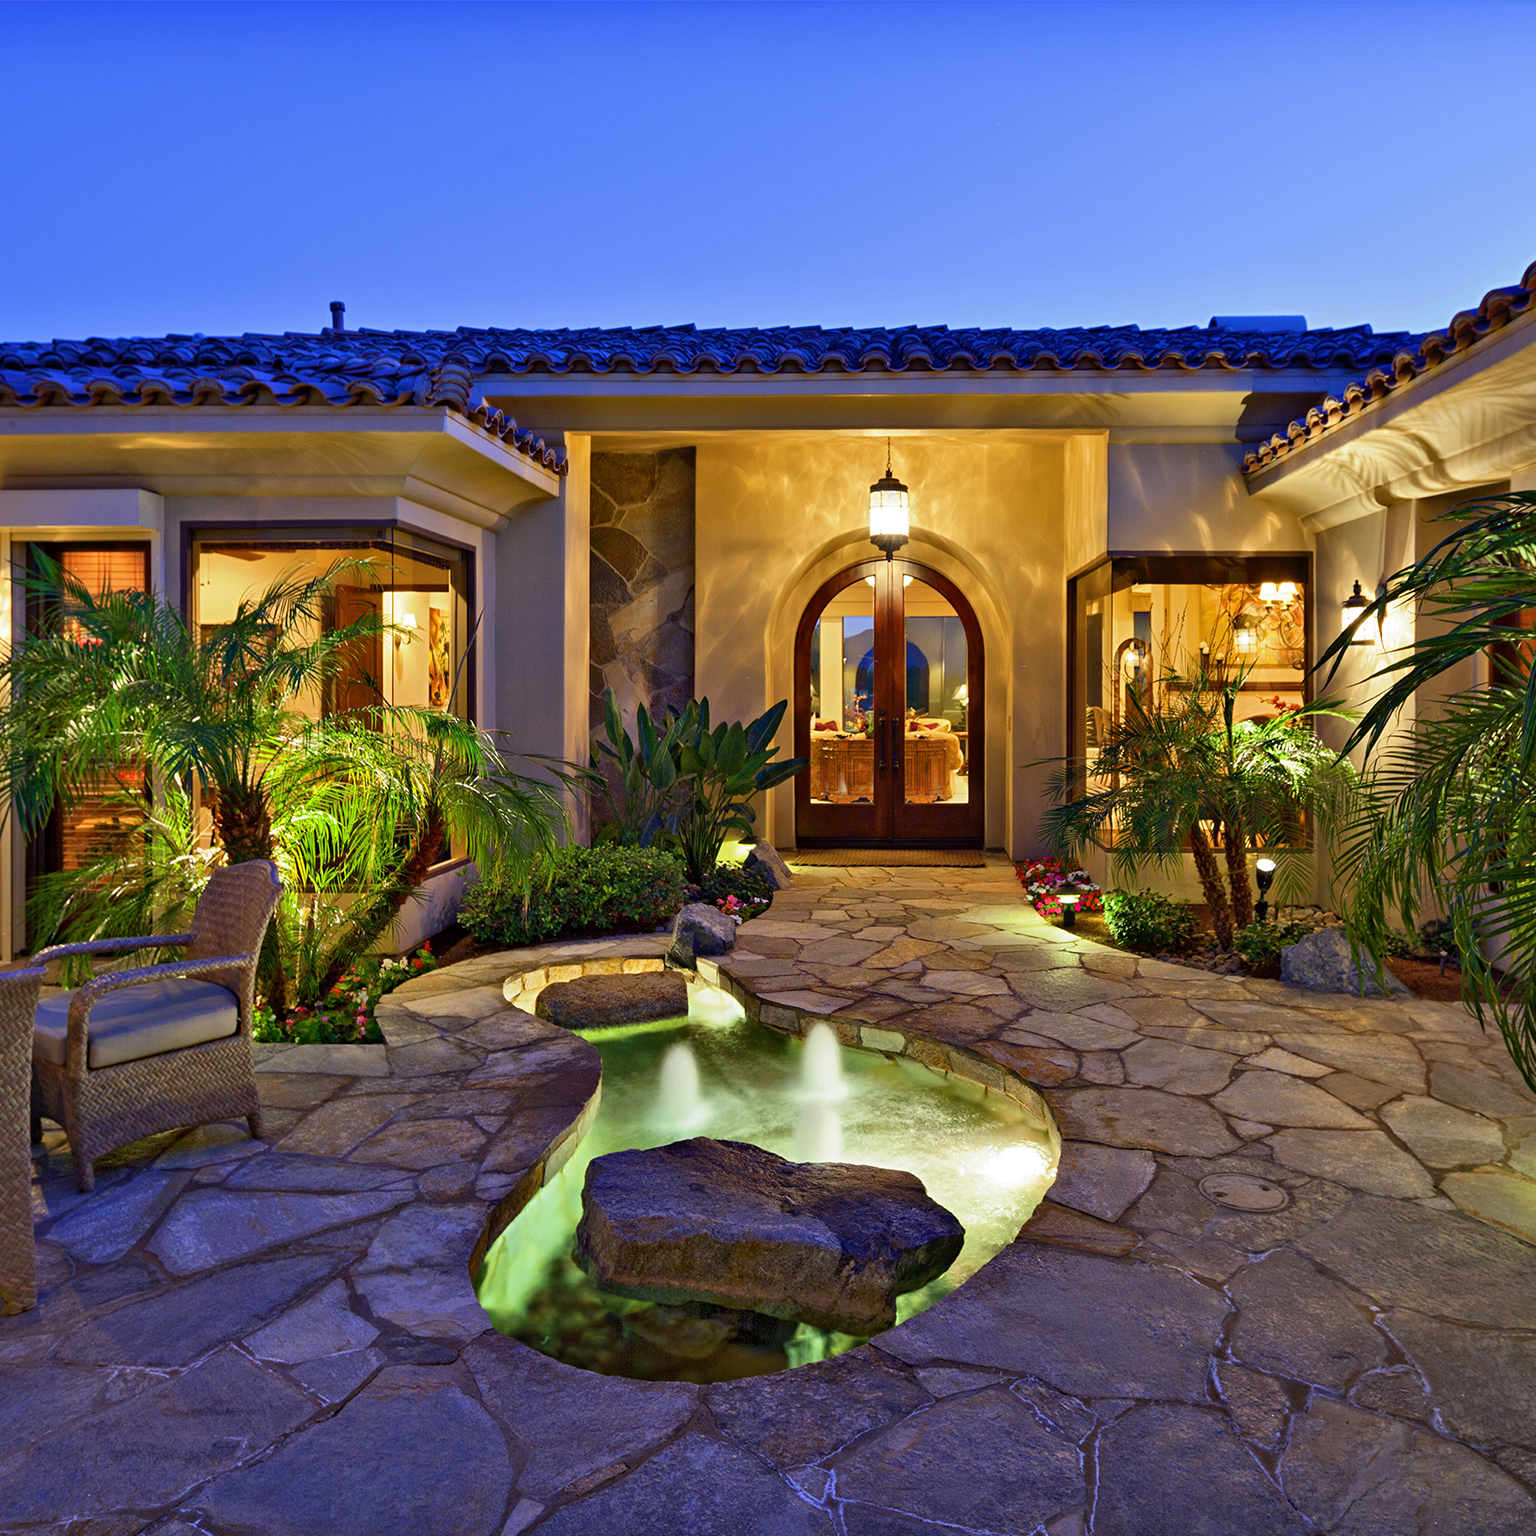 A photo of a backyard with tropical landscaping and a water feature.